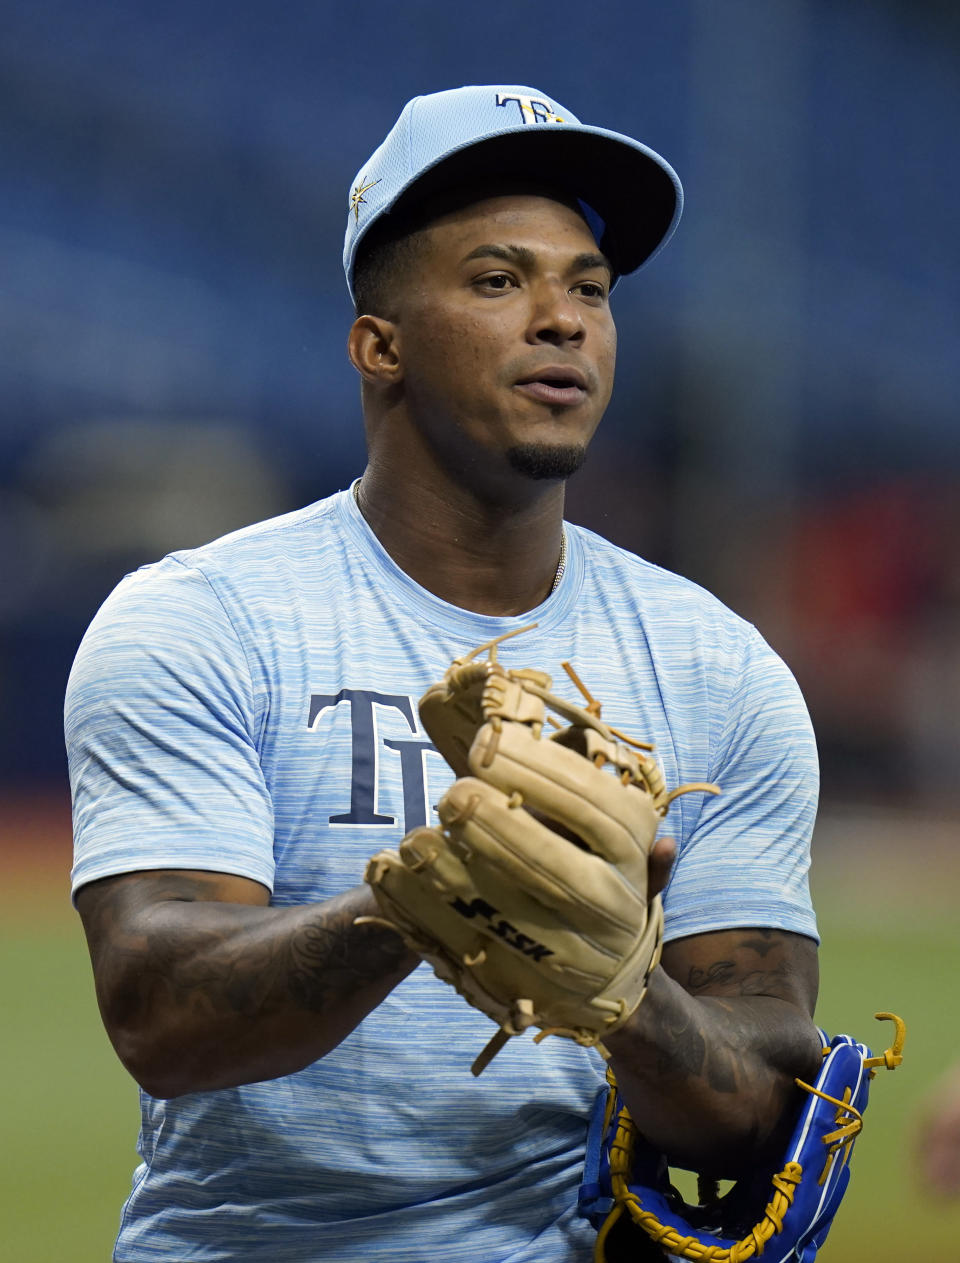 Tampa Bay Rays third baseman Wander Franco tries on gloves before a baseball game against the Boston Red Sox Tuesday, June 22, 2021, in St. Petersburg, Fla. The Rays called up Franco from their Class AAA Durham team. (AP Photo/Chris O'Meara)